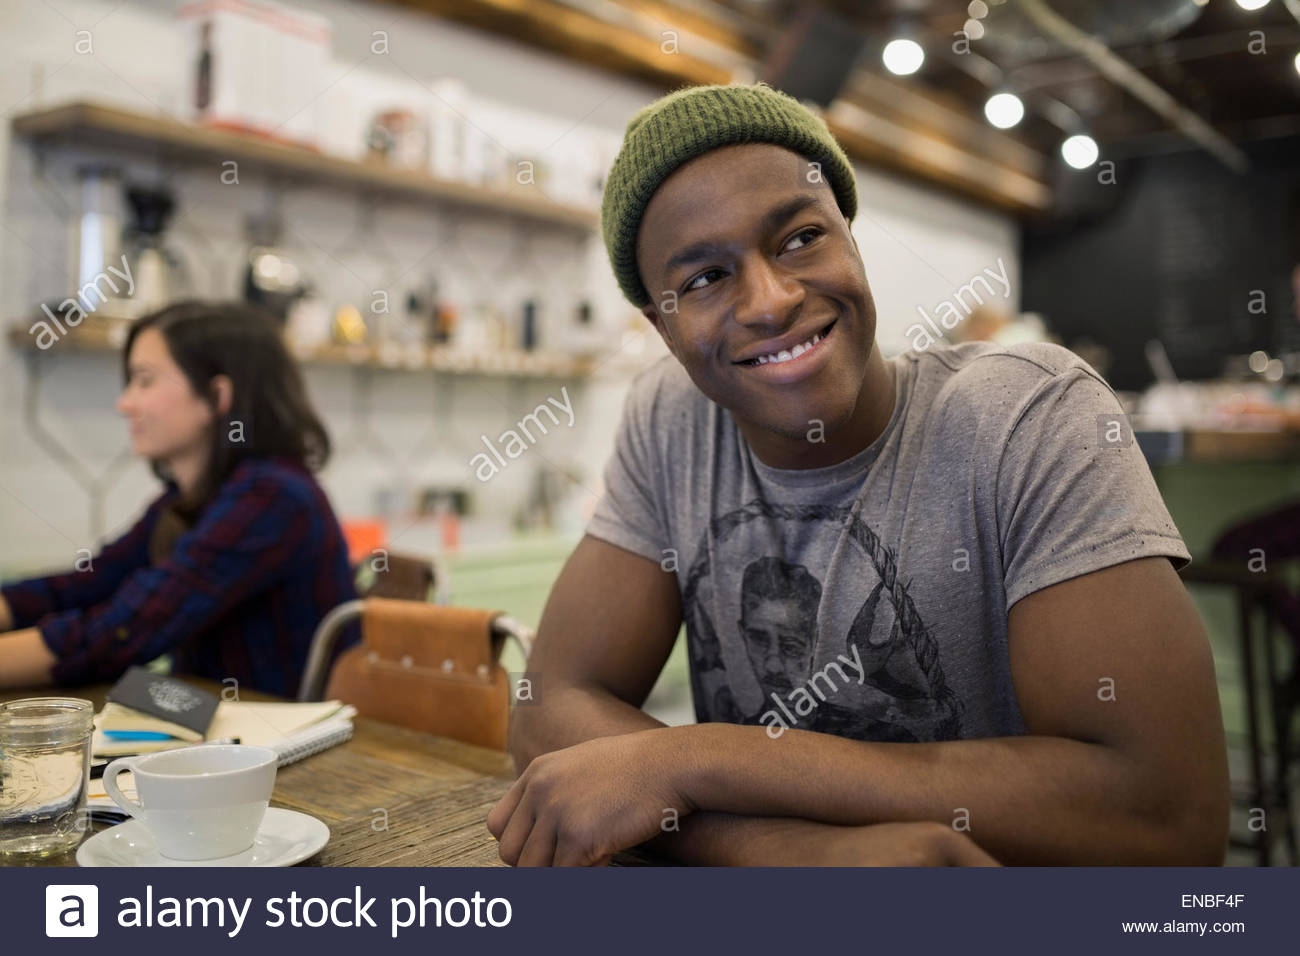 Smiling man in cafe - Stock Image